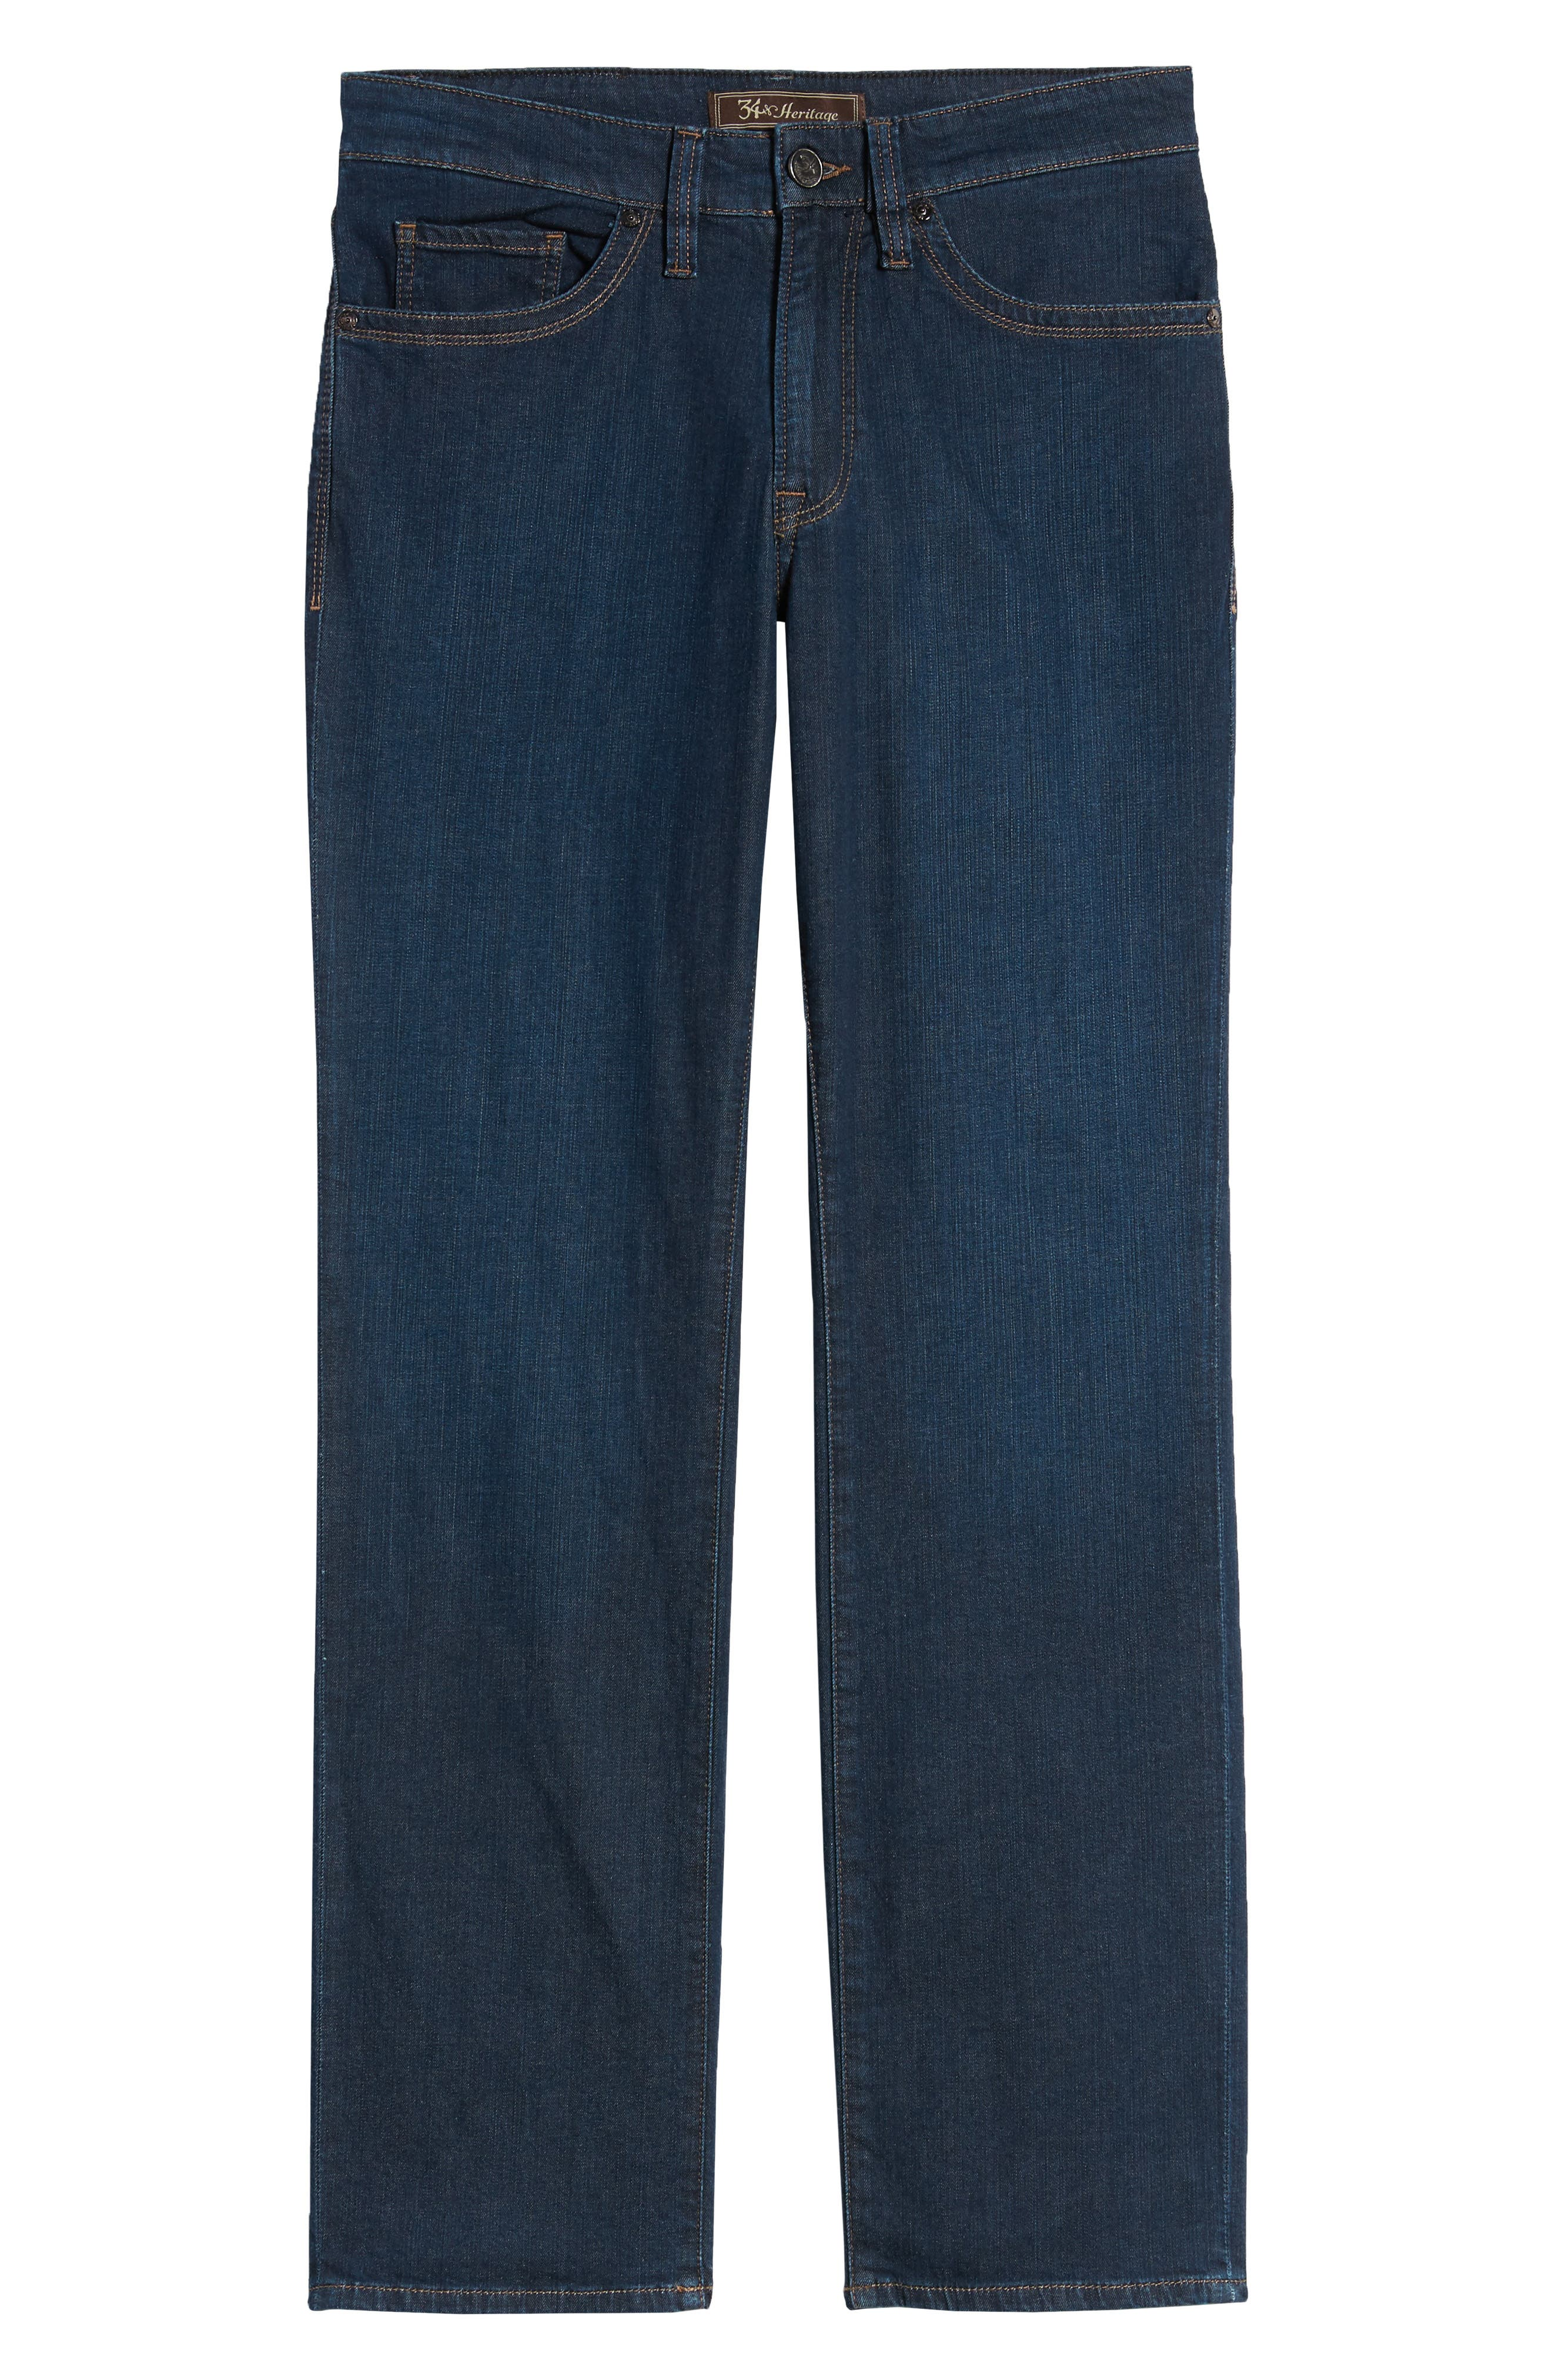 34 HERITAGE,                             'Charisma' Classic Relaxed Fit Jeans,                             Alternate thumbnail 2, color,                             DARK CASHMERE WASH